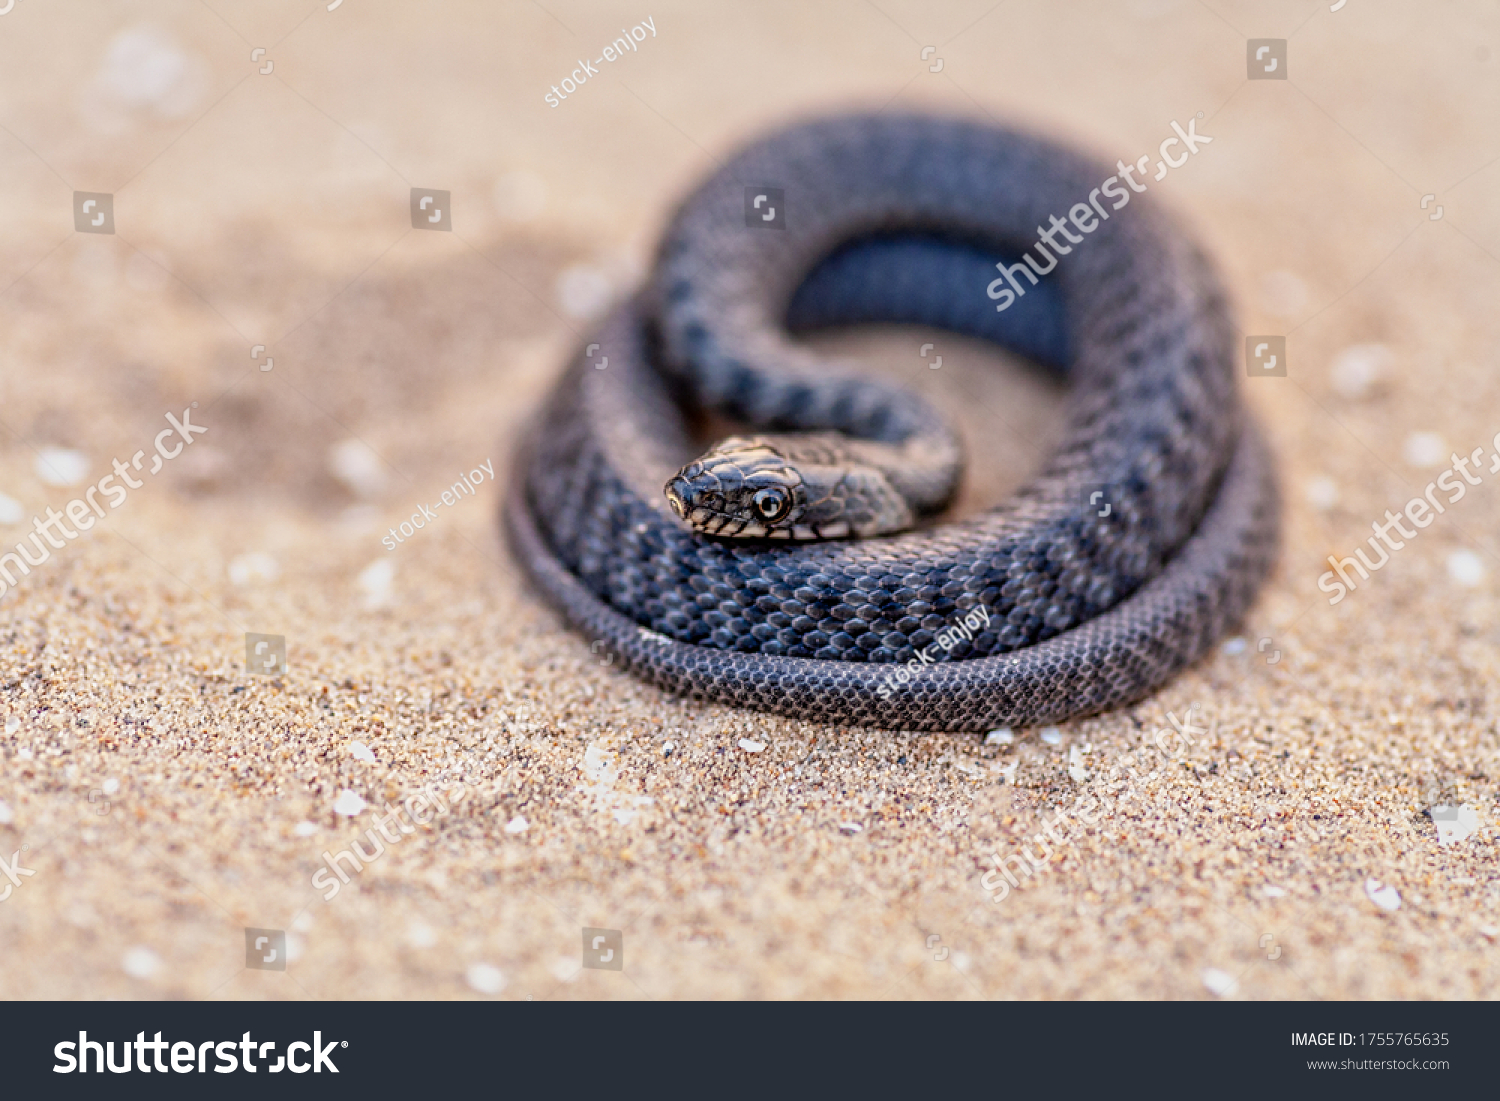 Snake is redy to attack in coils on sand, very shallow DOF, copyspace